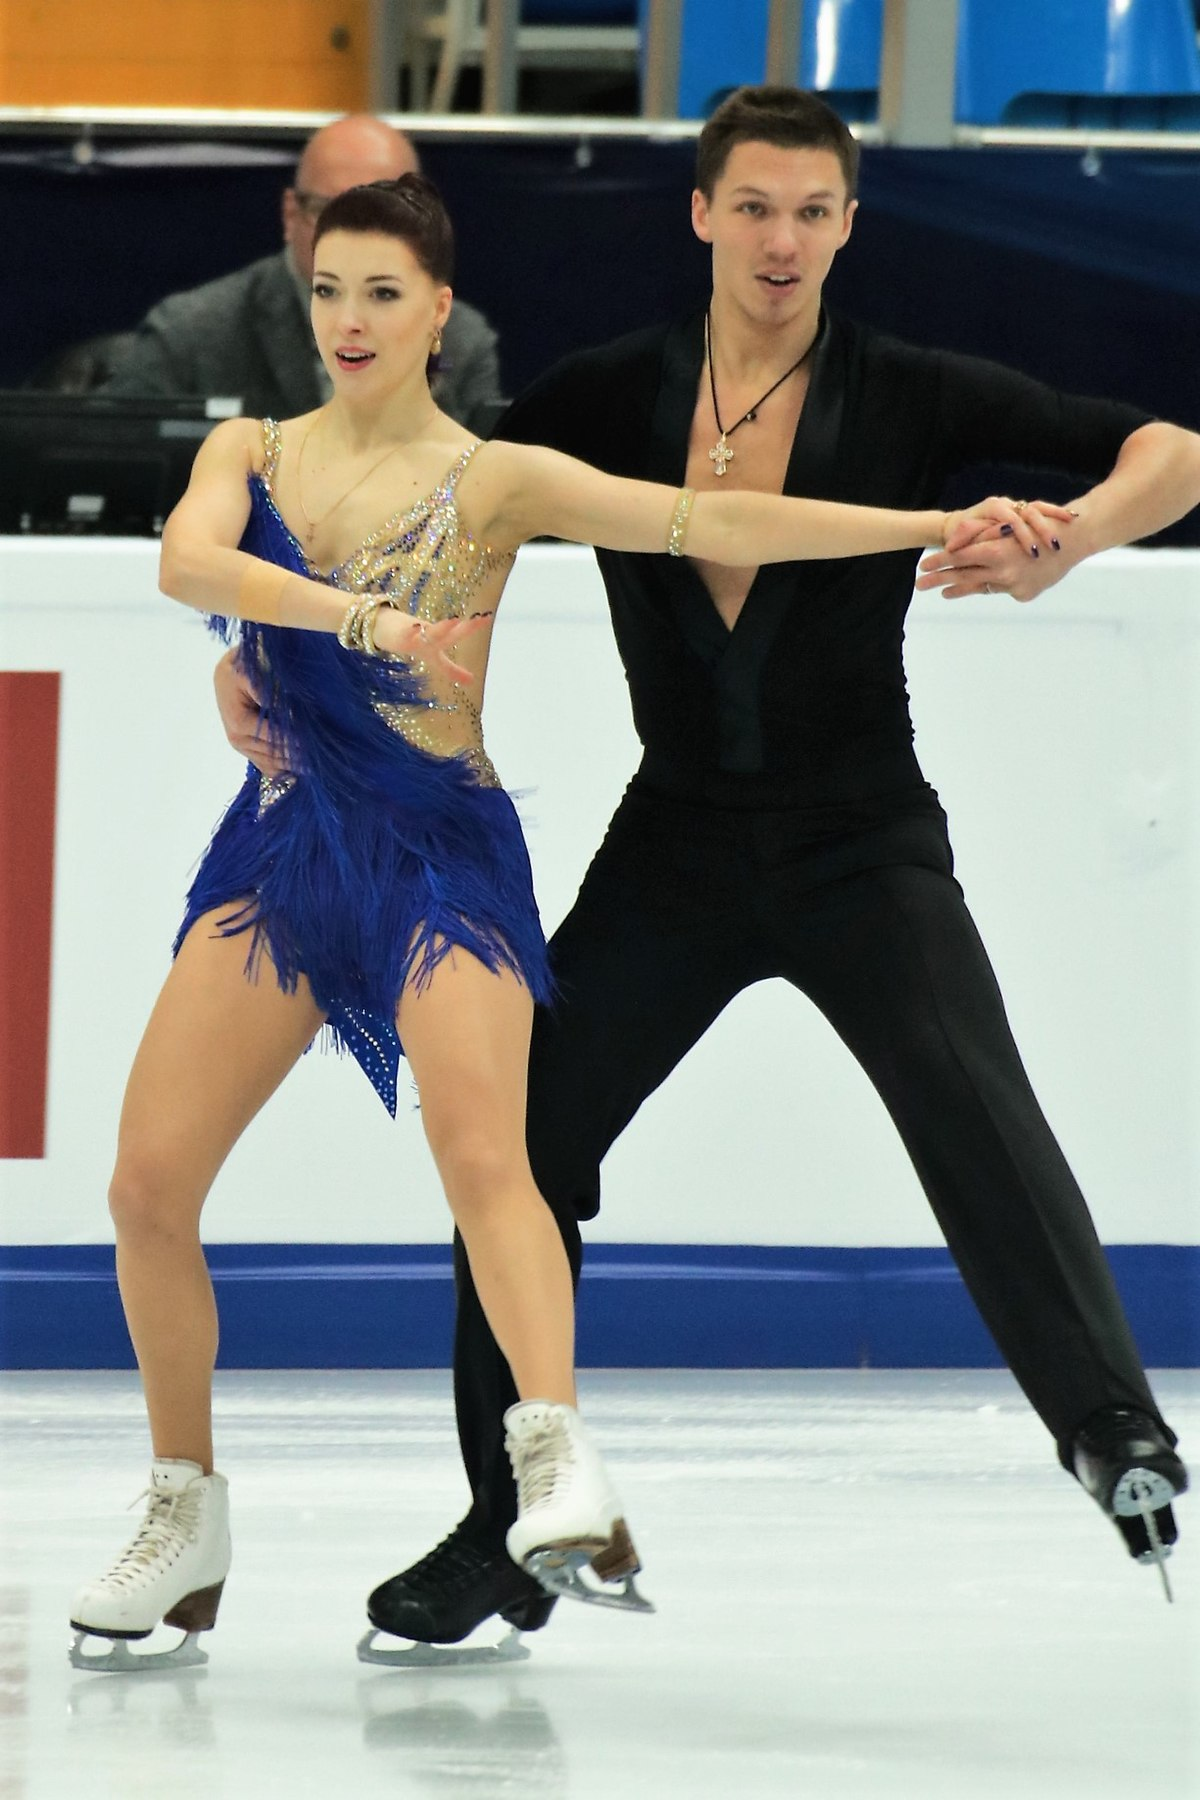 Figure skater Angelica Krylova: biography, photos and achievements 10